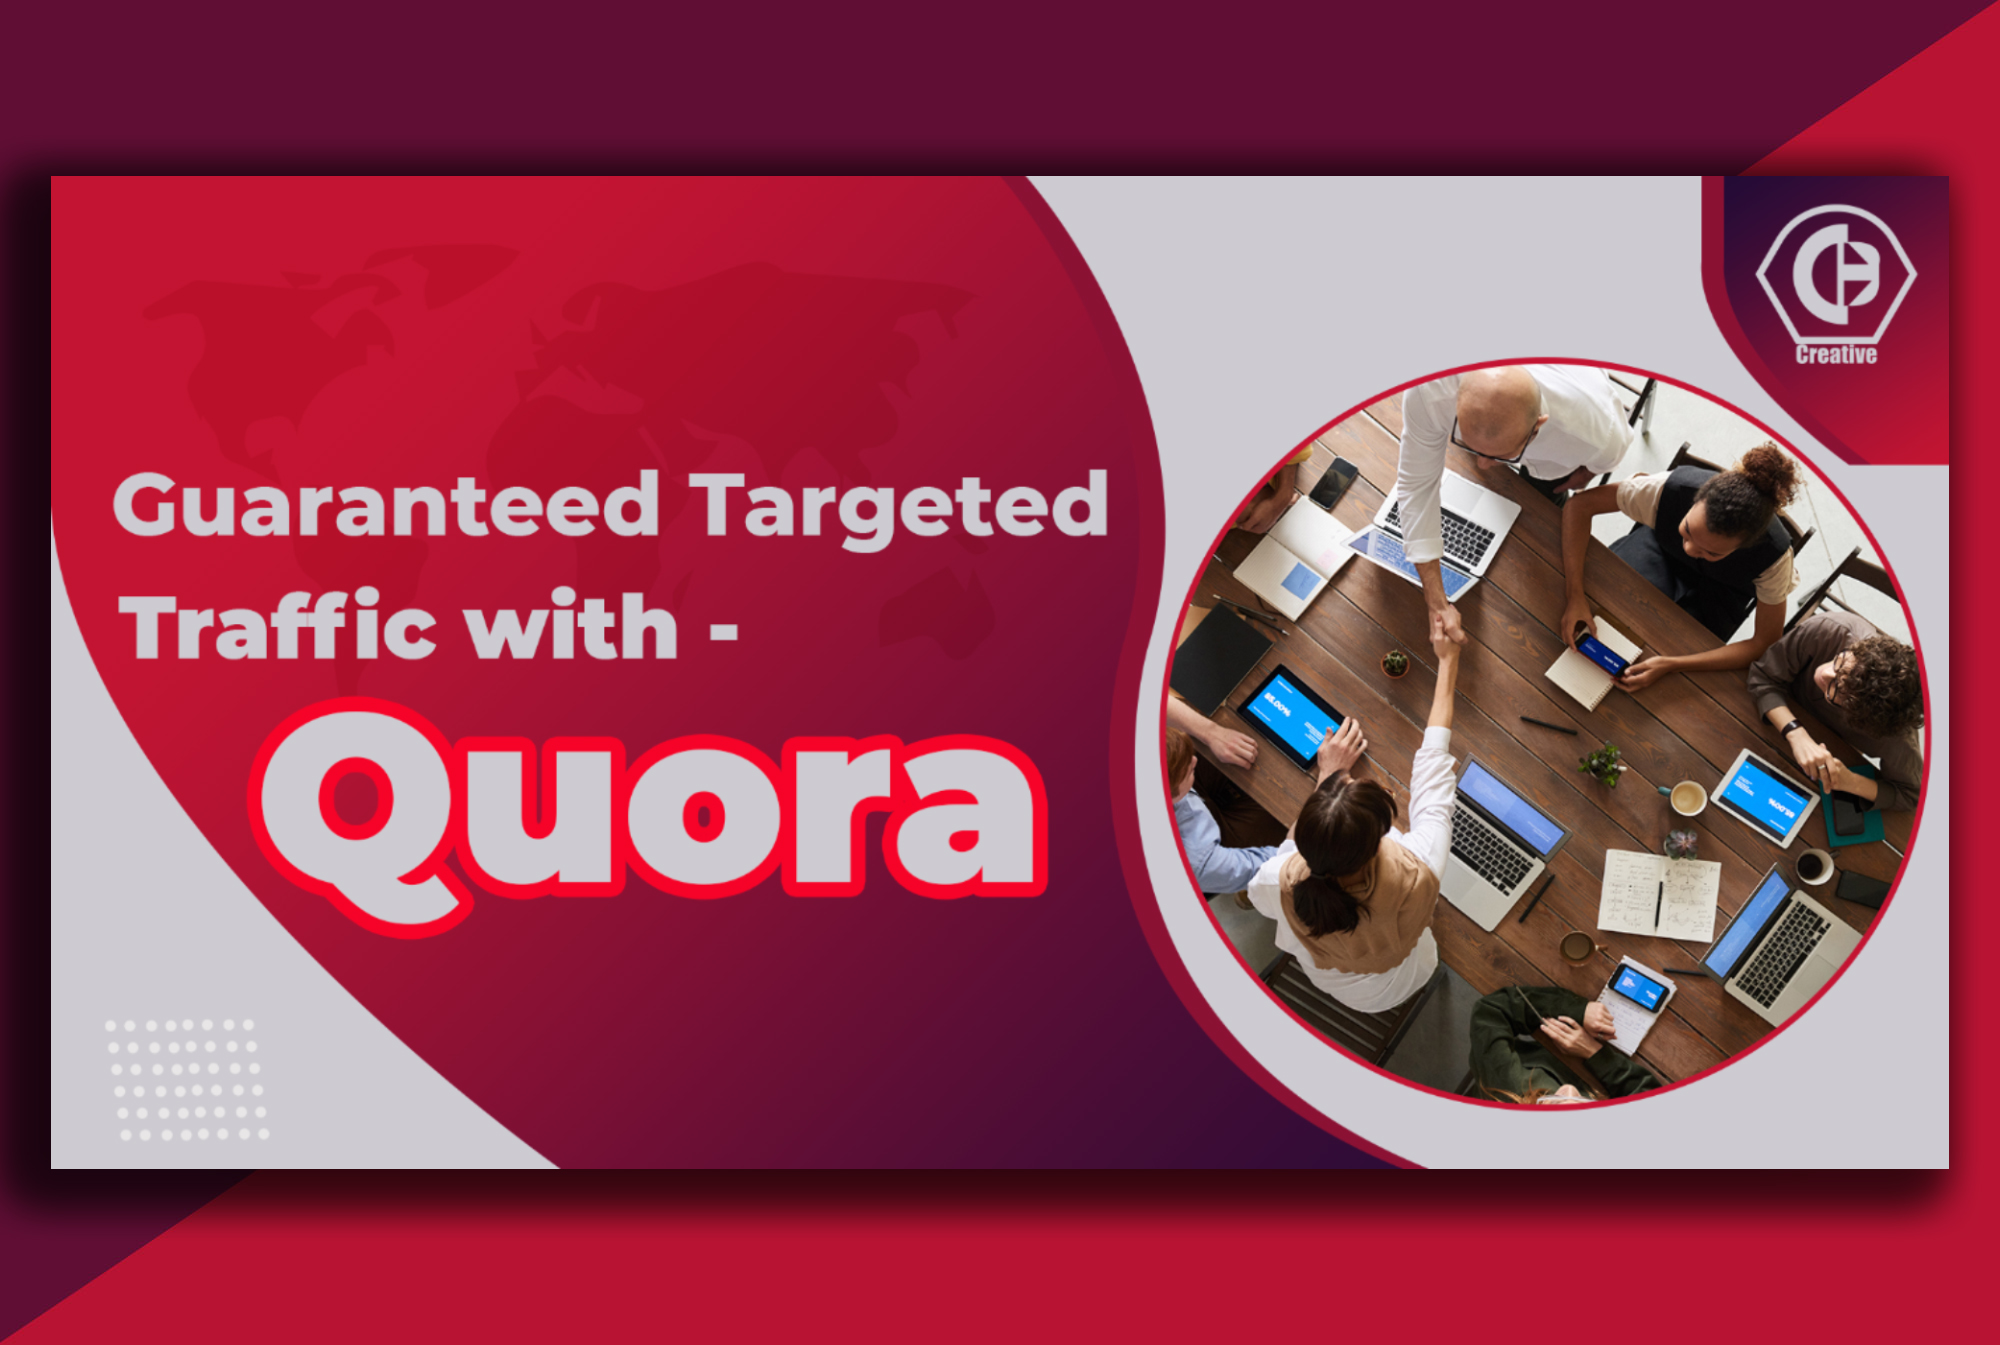 Bring niche relevent traffic with 60 quora answer